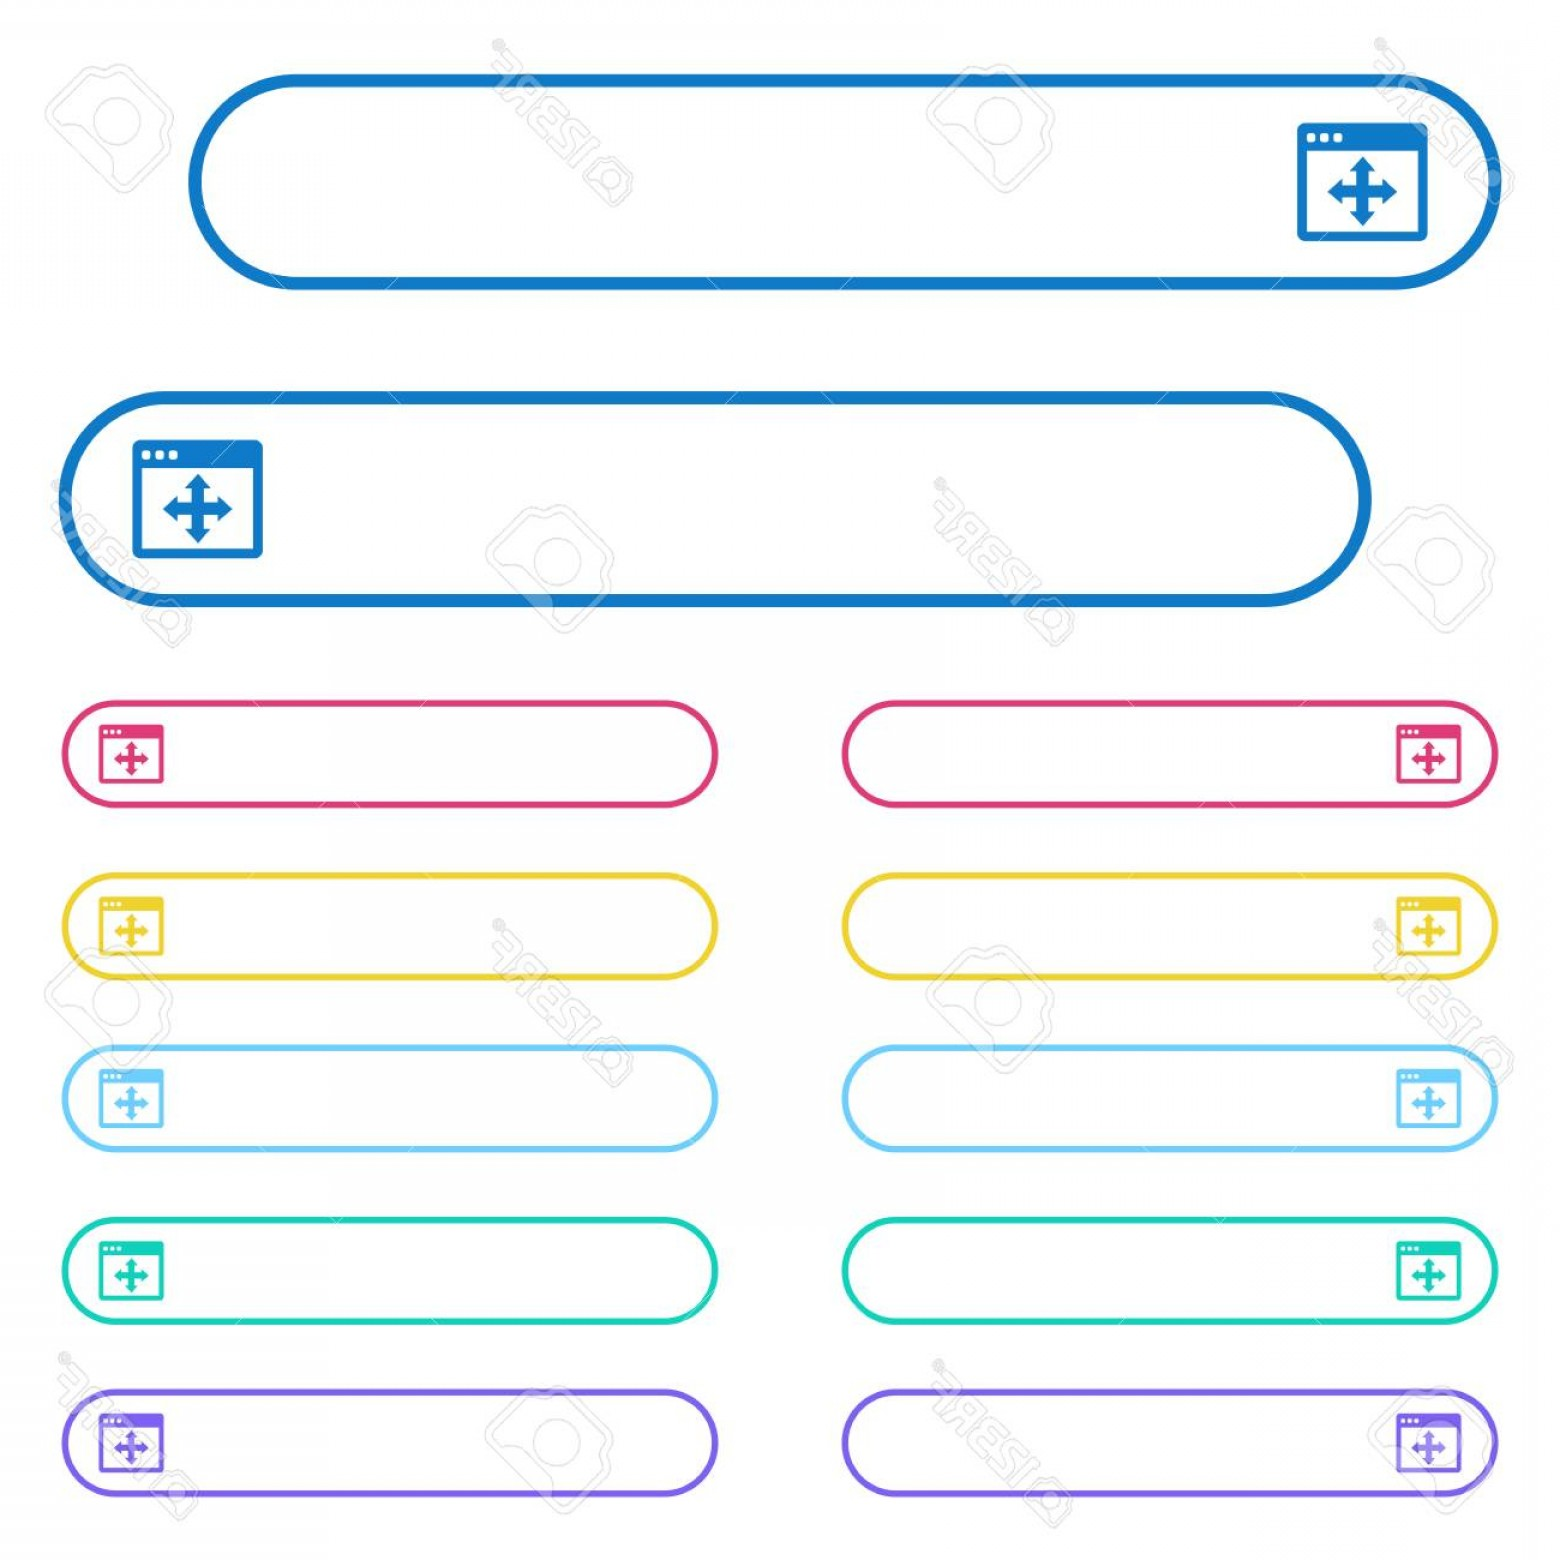 Windows 8 Phone Icon Vector: Photostock Vector Move Window Icons In Rounded Color Menu Buttons Left And Right Side Icon Variations